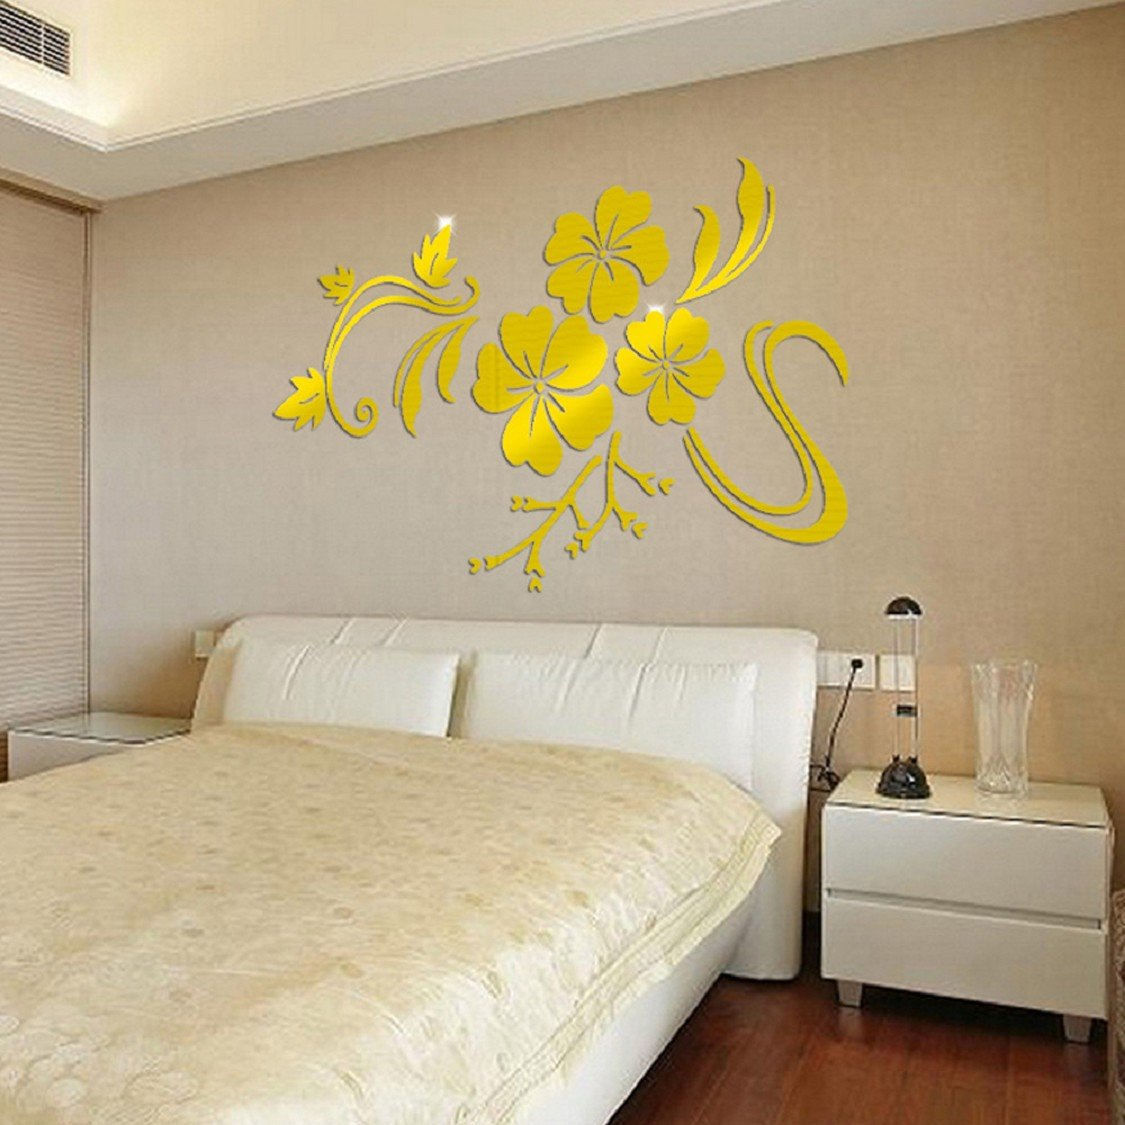 Ikevan 1Set Acrylic Art 3D Mirror Flower Wall Stickers DIY Home Wall ...